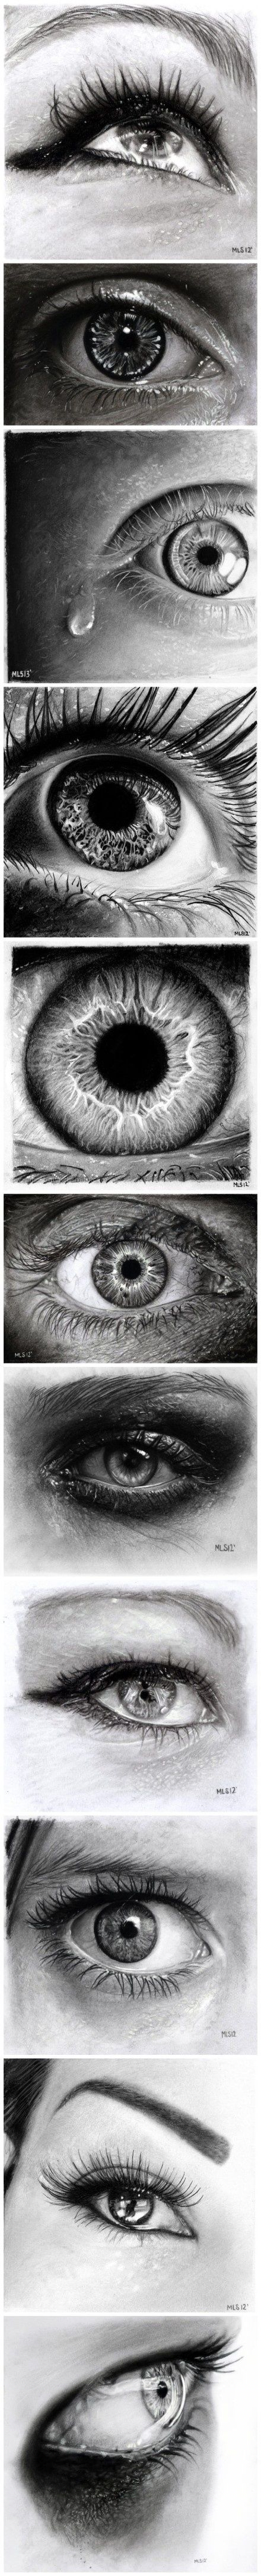 Pencil drawings of eyes. Not sure who drew them.